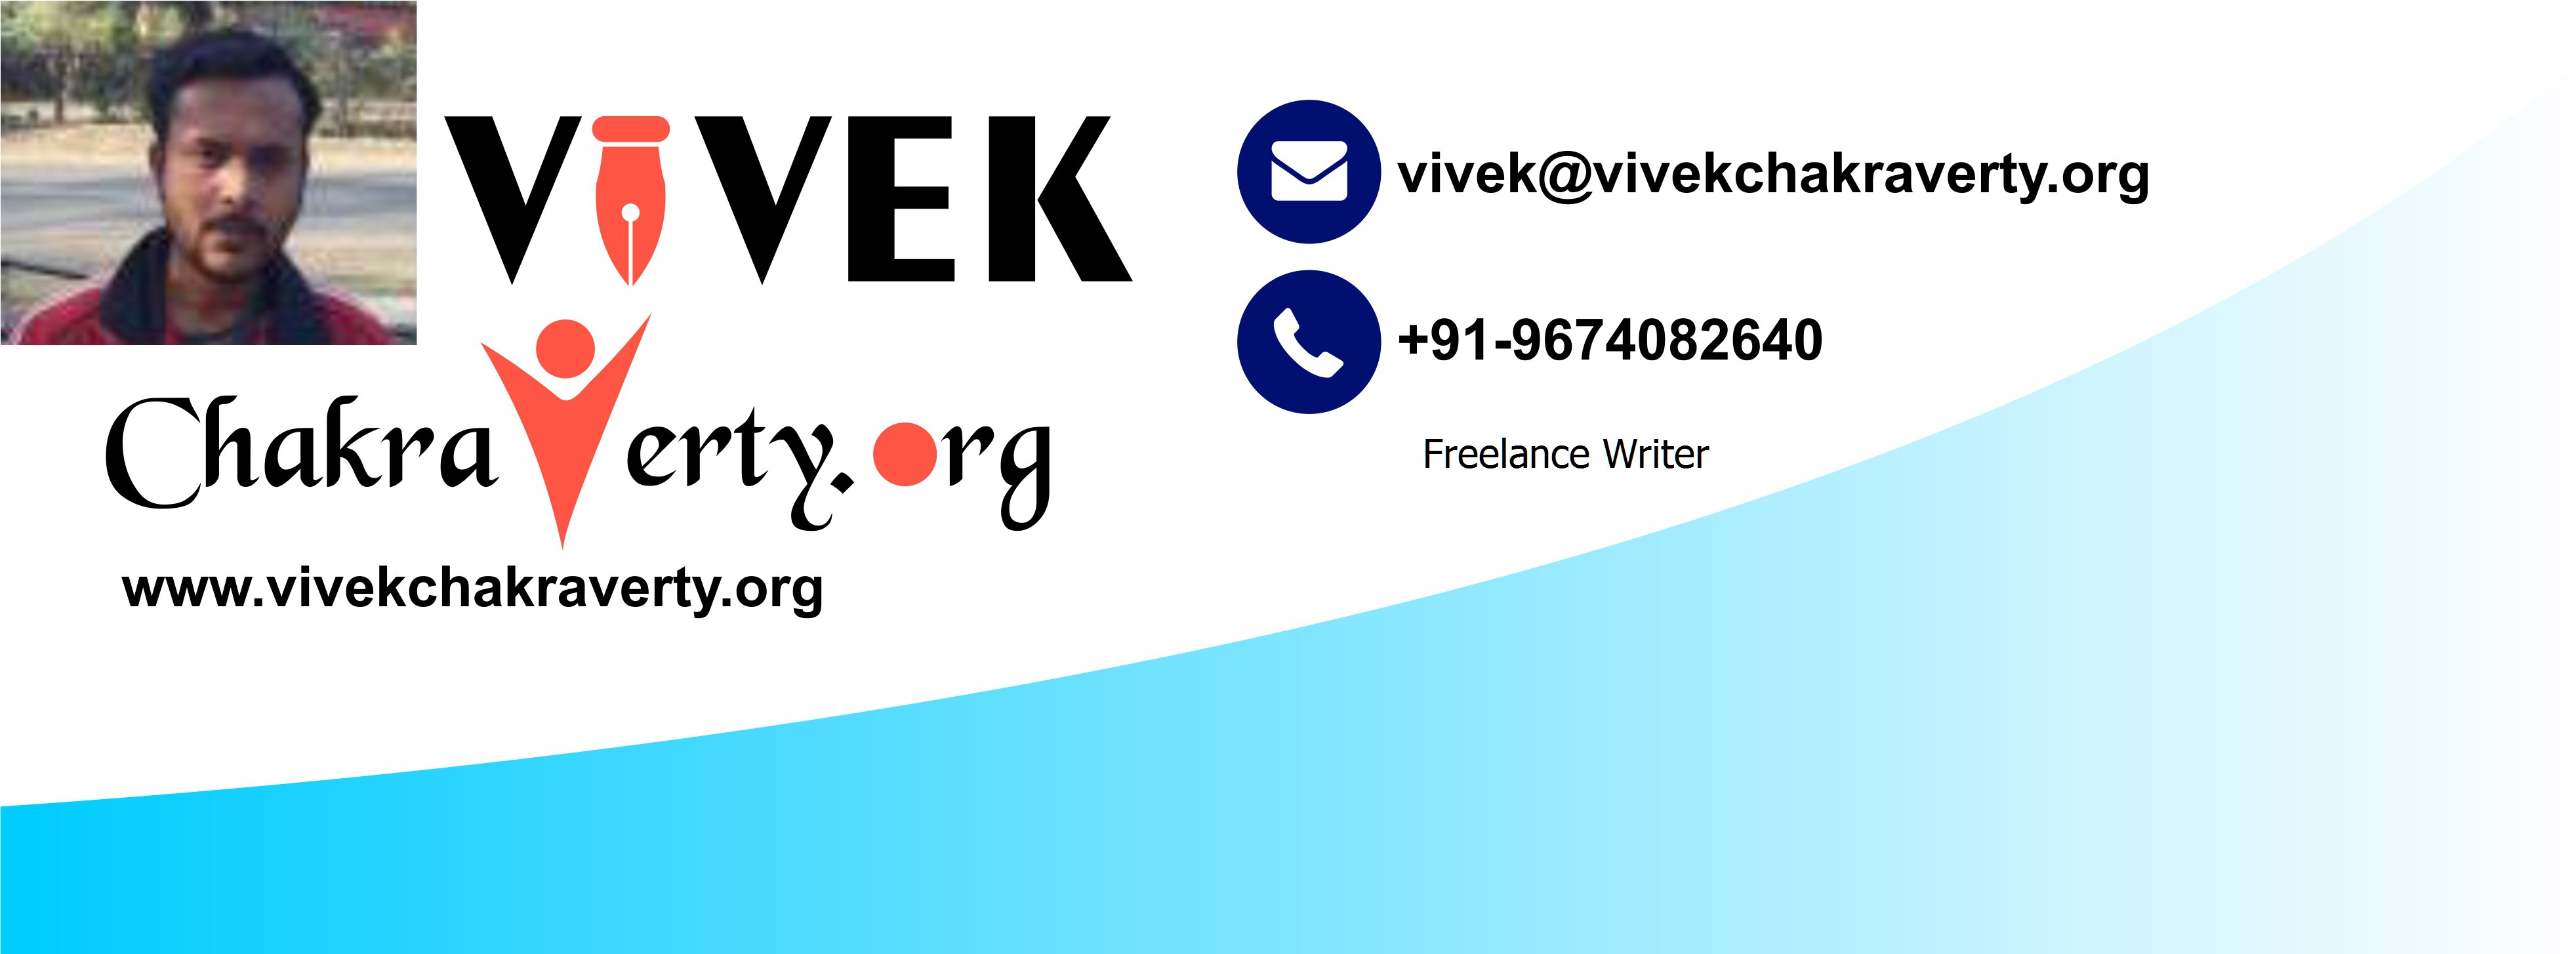 Vivek Chakraverty Banner